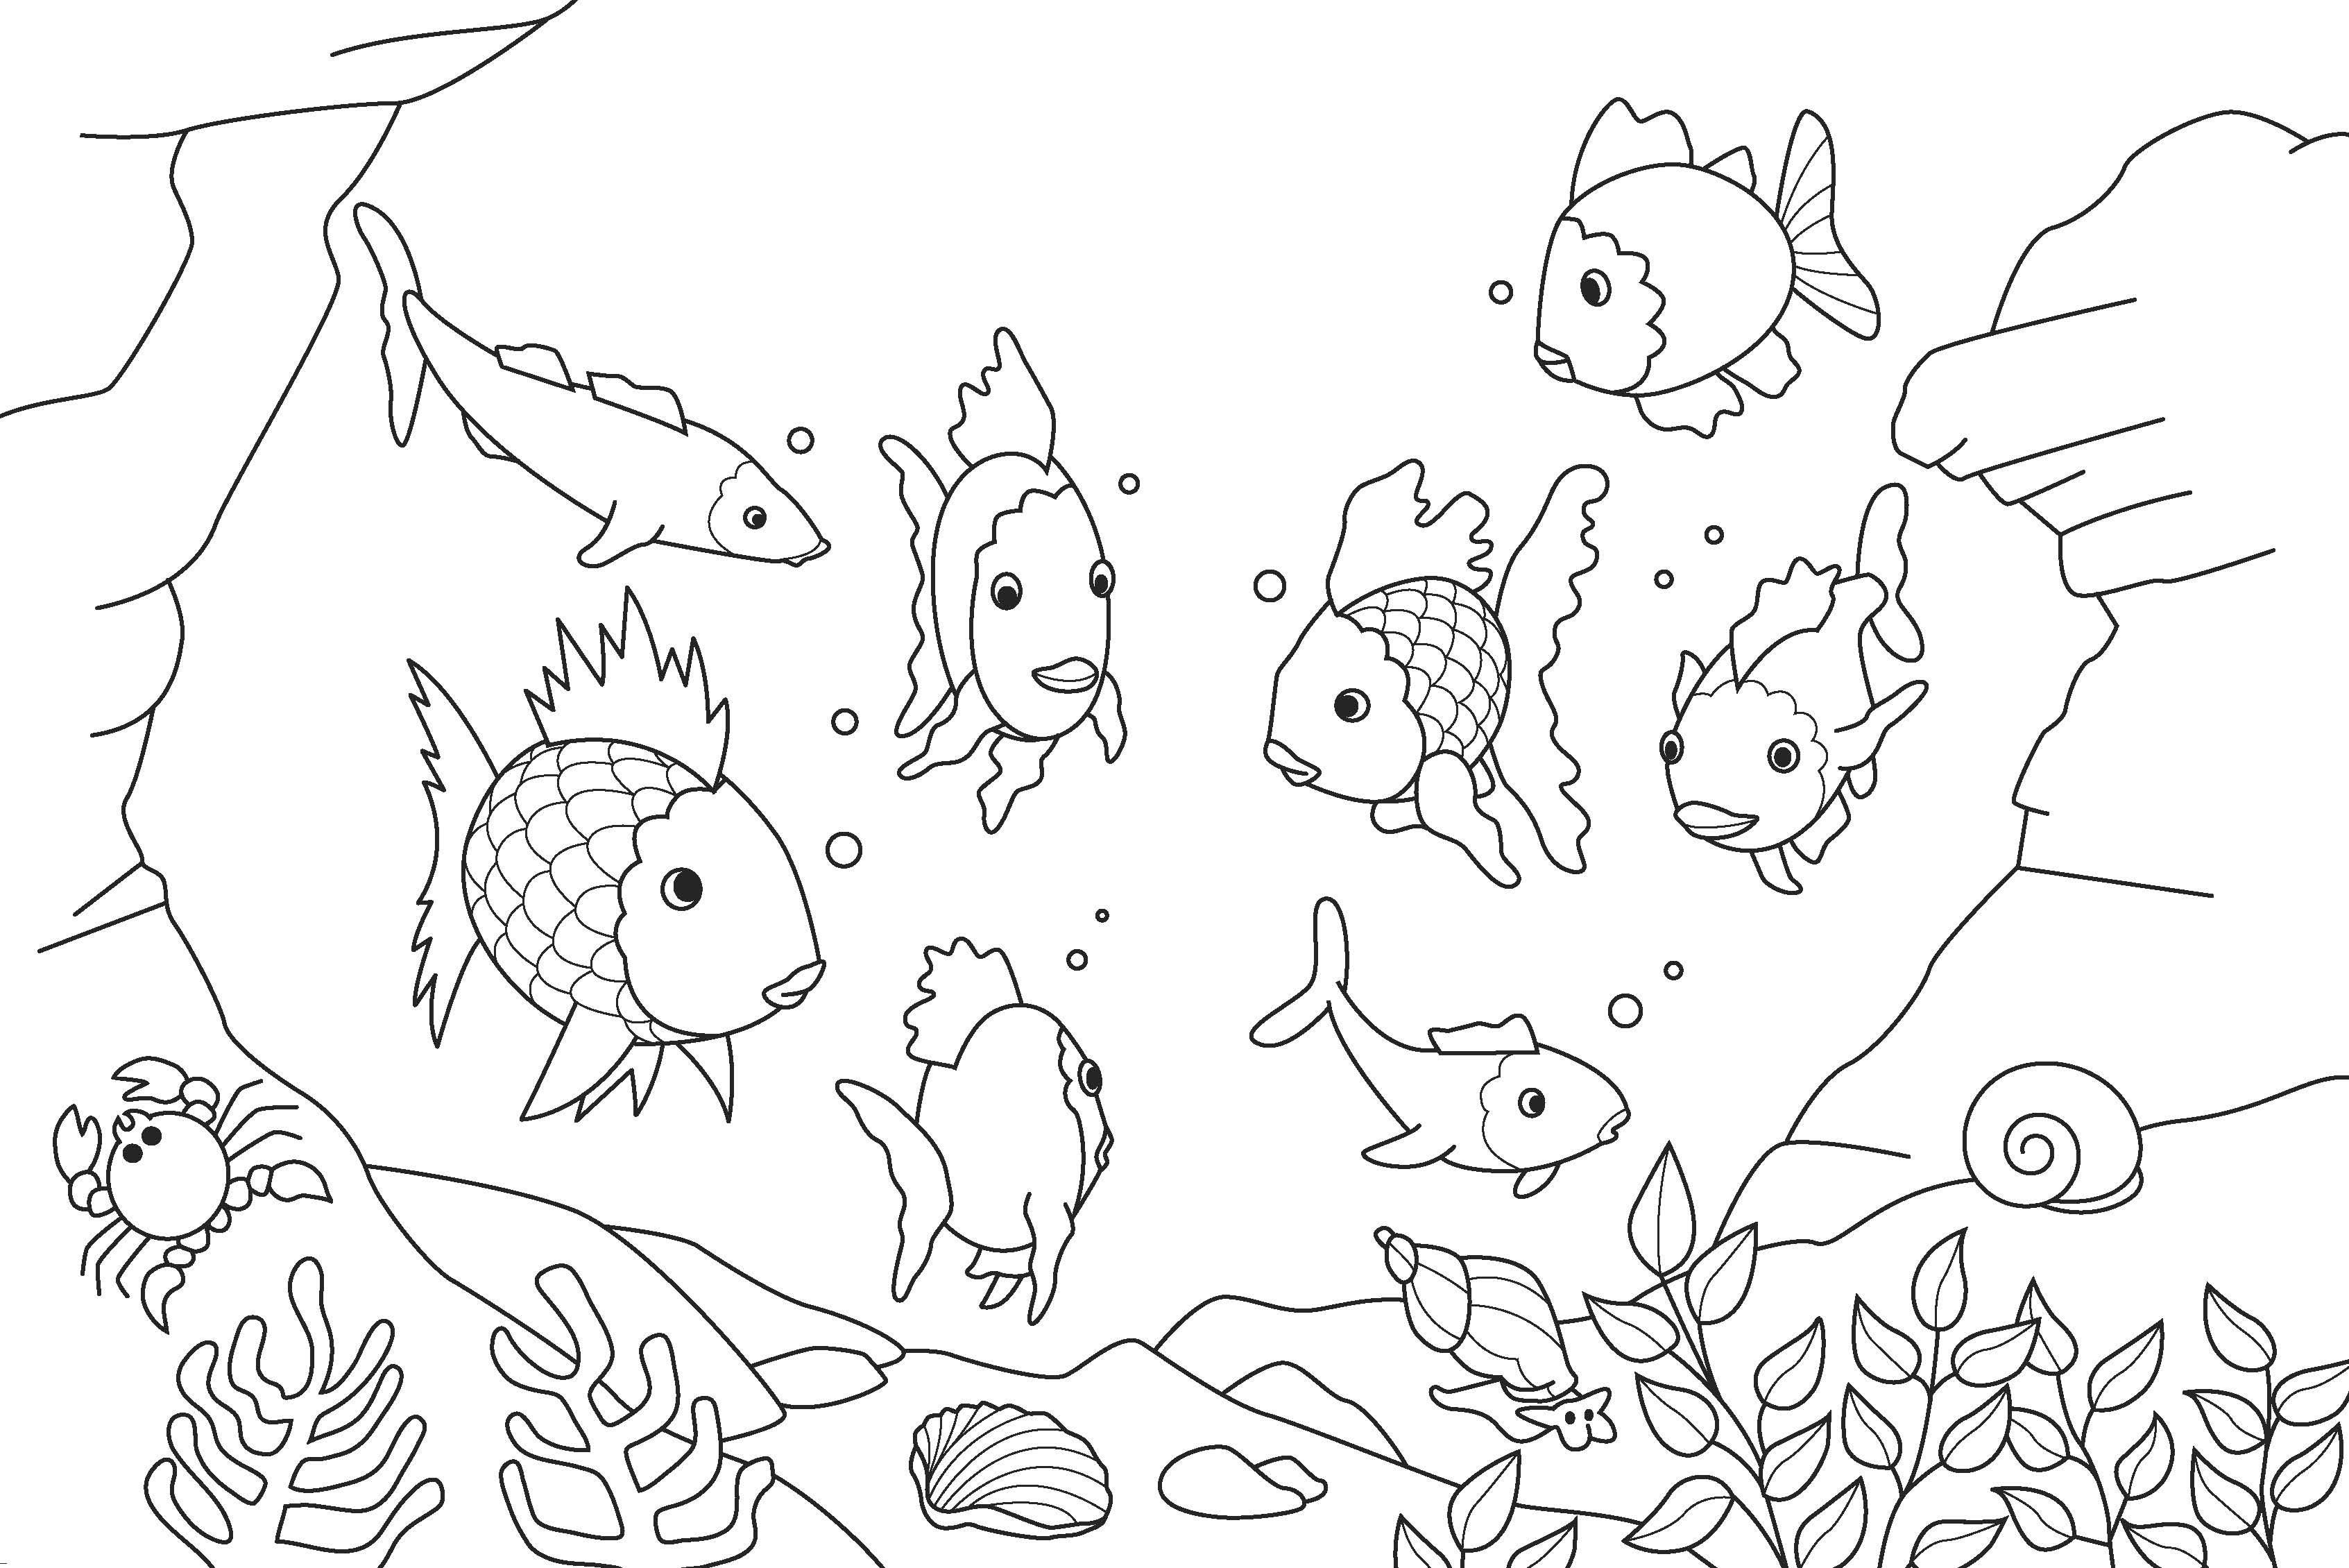 free coloring page fish coloring pages fish fish coloring pages kids - Pages For Kids